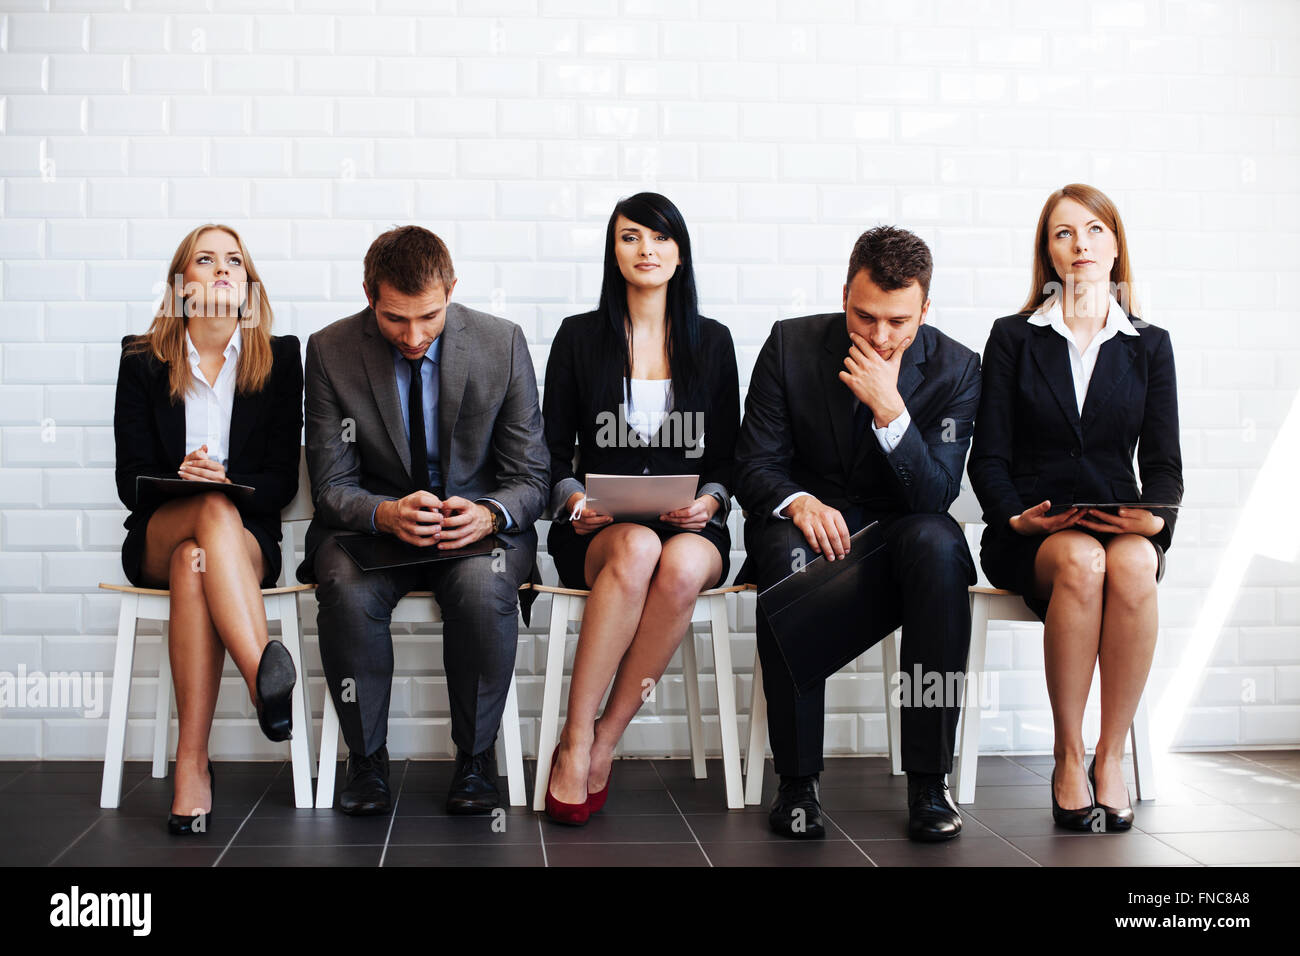 Standing out from crowd, confident business woman waiting for job interview - Stock Image